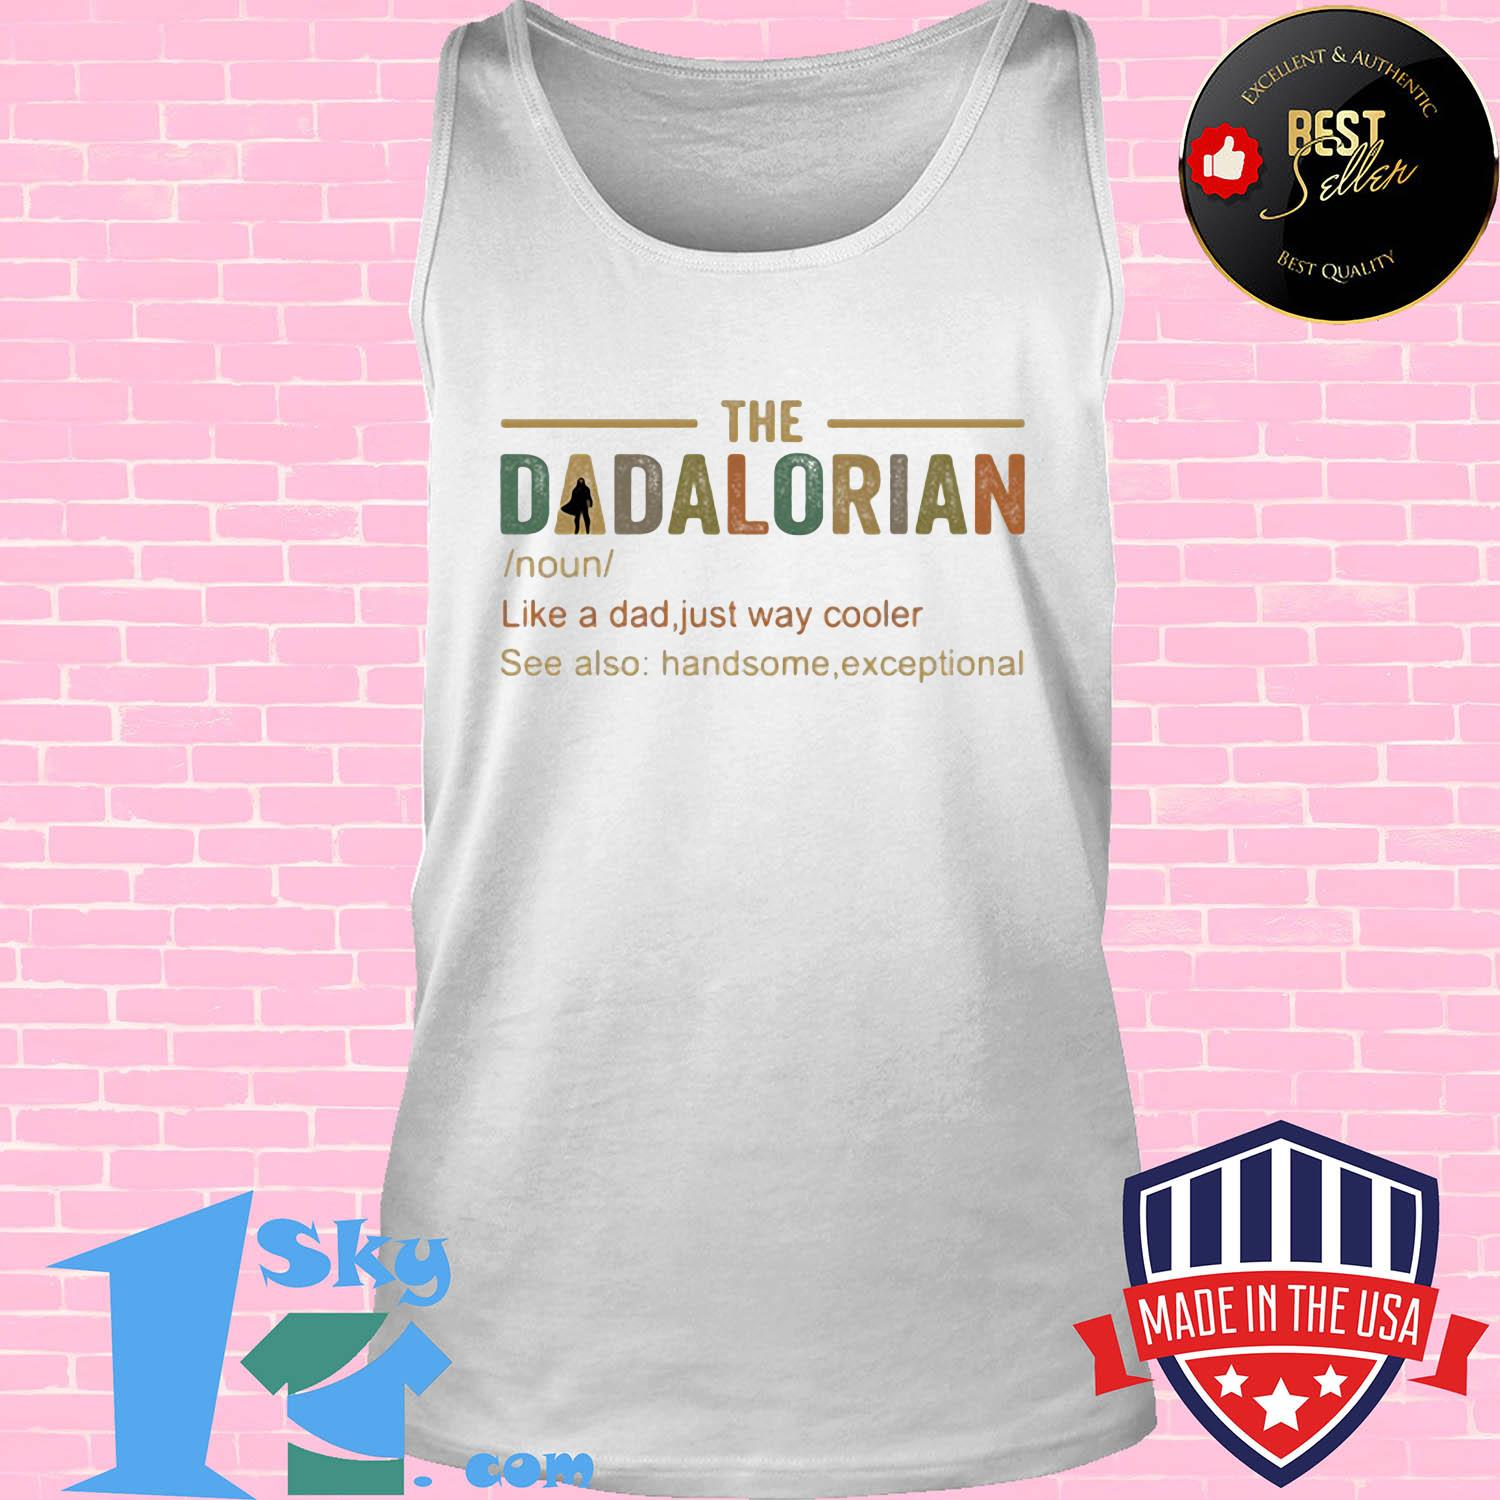 The dadalorian like a dad just way cooler s Tank top